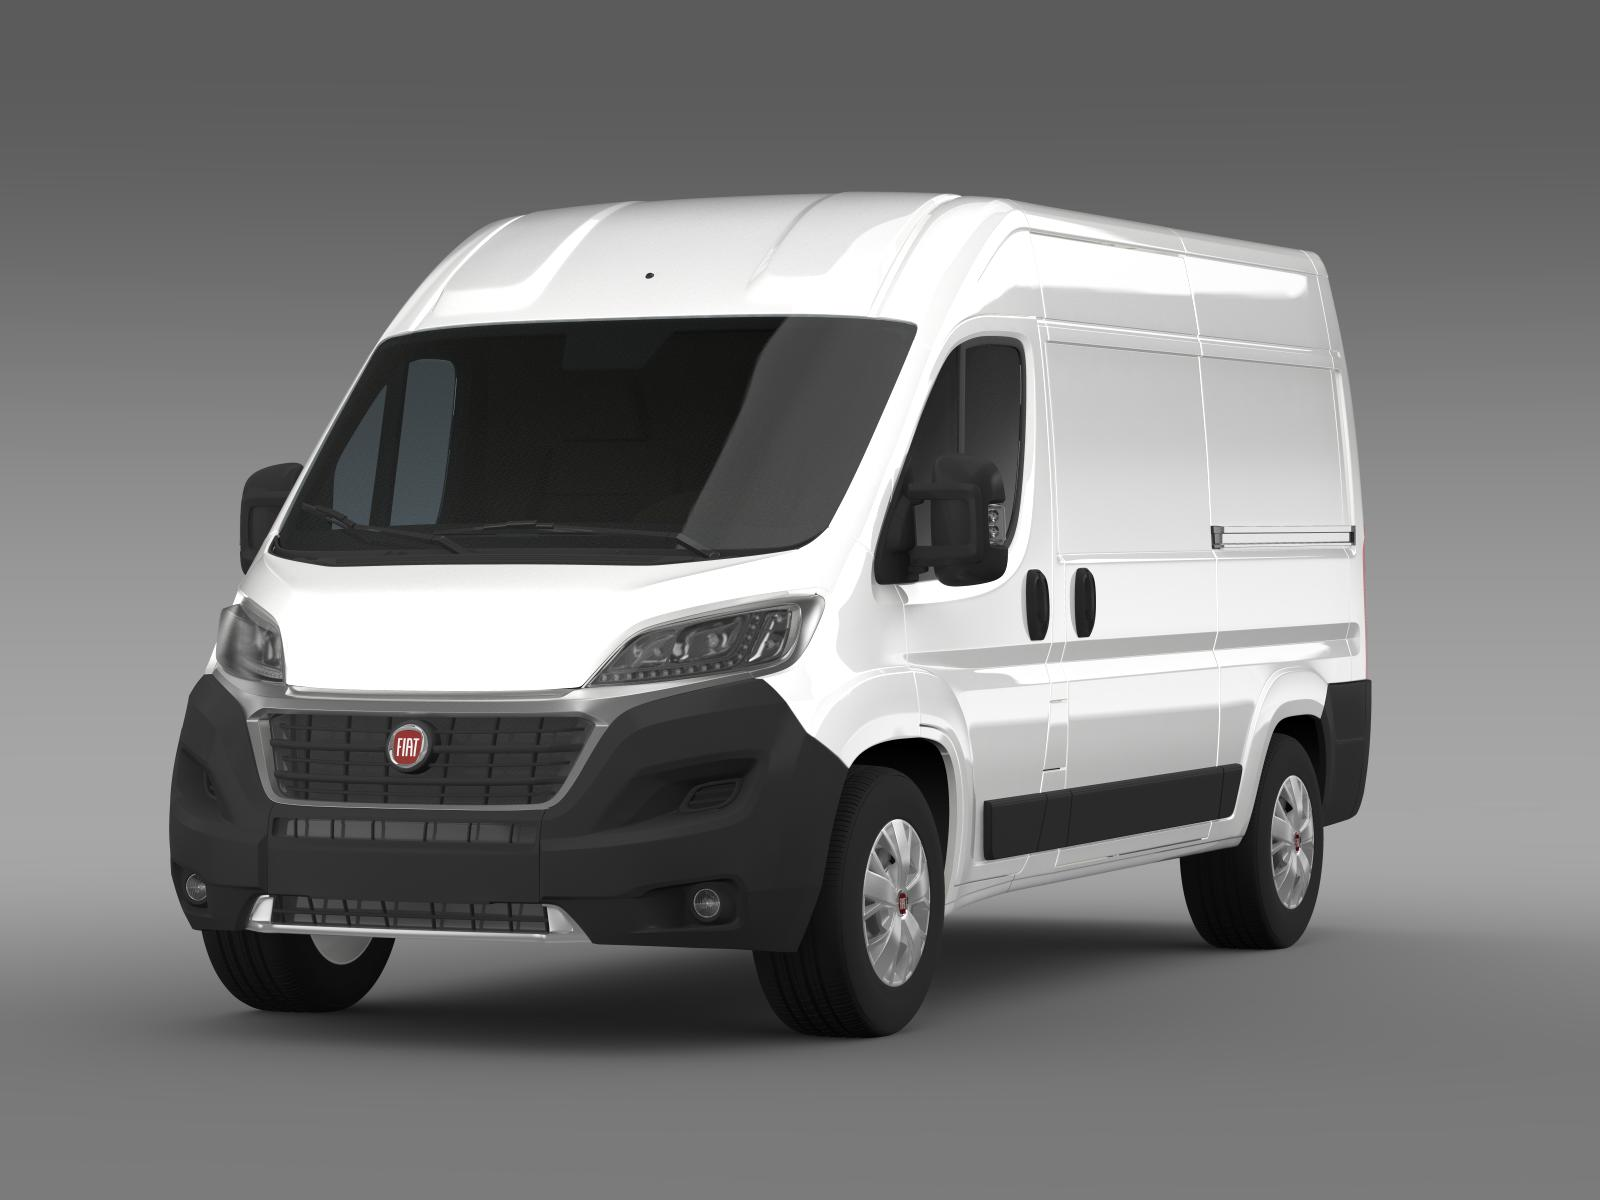 fiat ducato van l2h2 2015 3d model buy fiat ducato van l2h2 2015 3d model flatpyramid. Black Bedroom Furniture Sets. Home Design Ideas